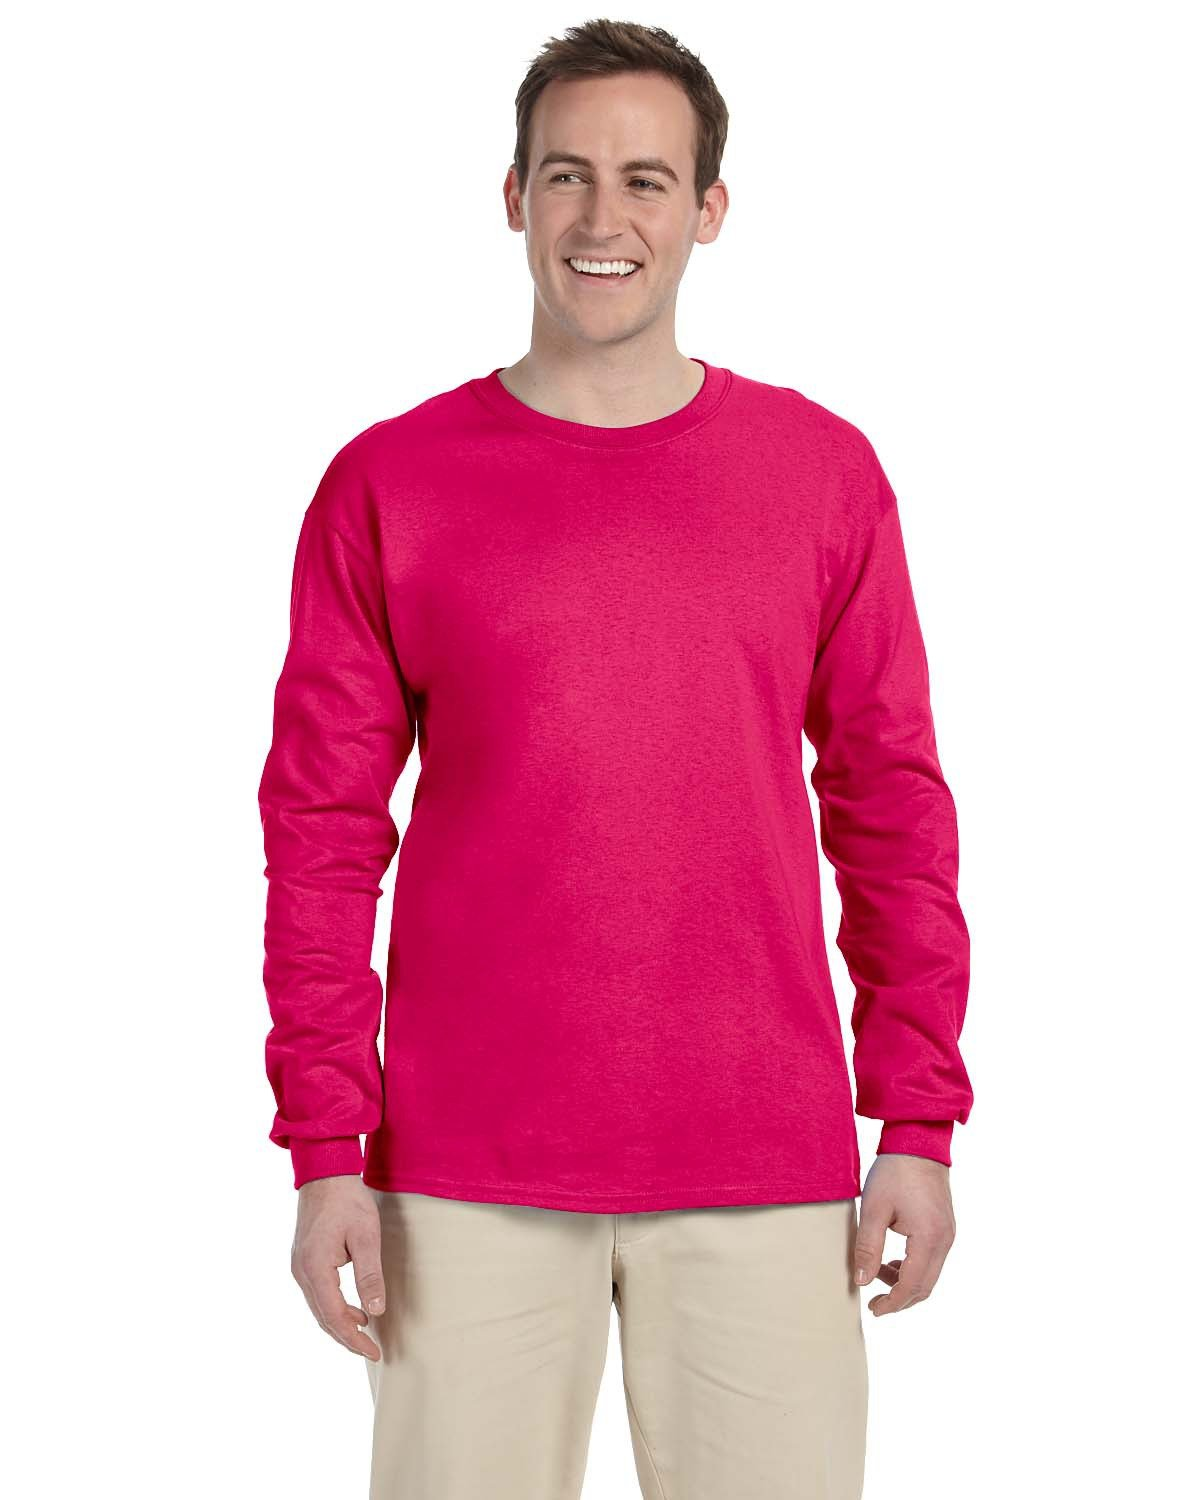 Fruit of the Loom Adult HD Cotton™ Long-Sleeve T-Shirt CYBER PINK